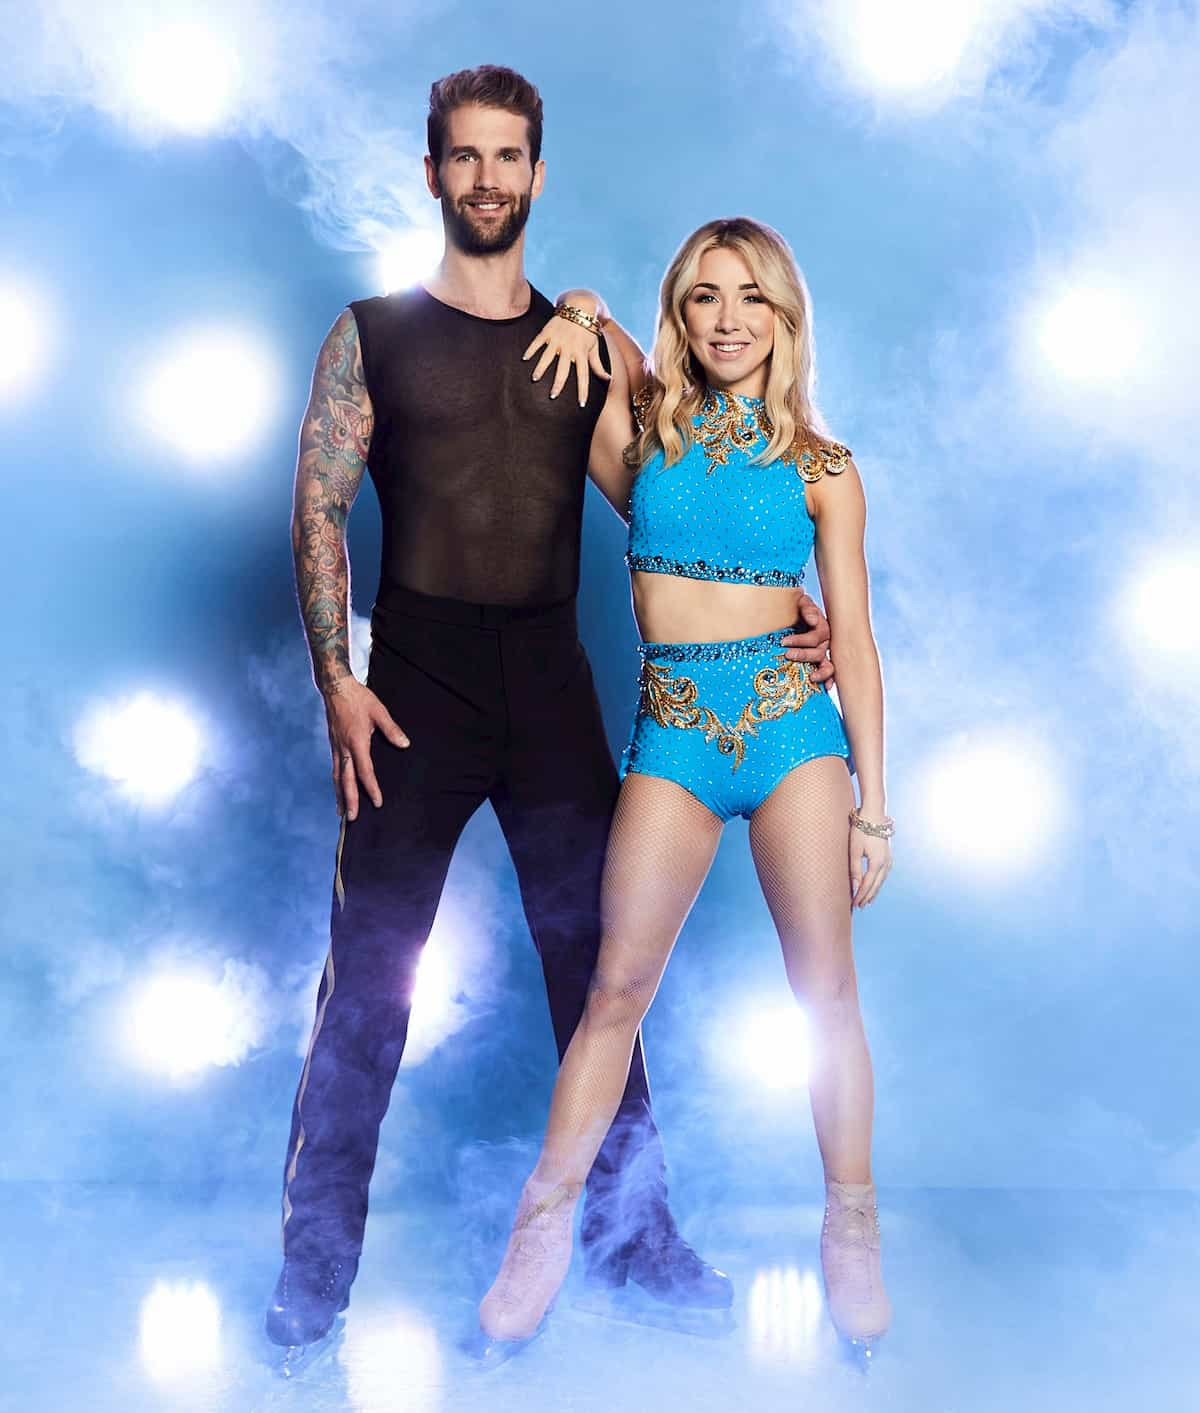 Andre Hamann - Stina Martini bei Dancing on Ice 2019 Herbst zweite Staffel